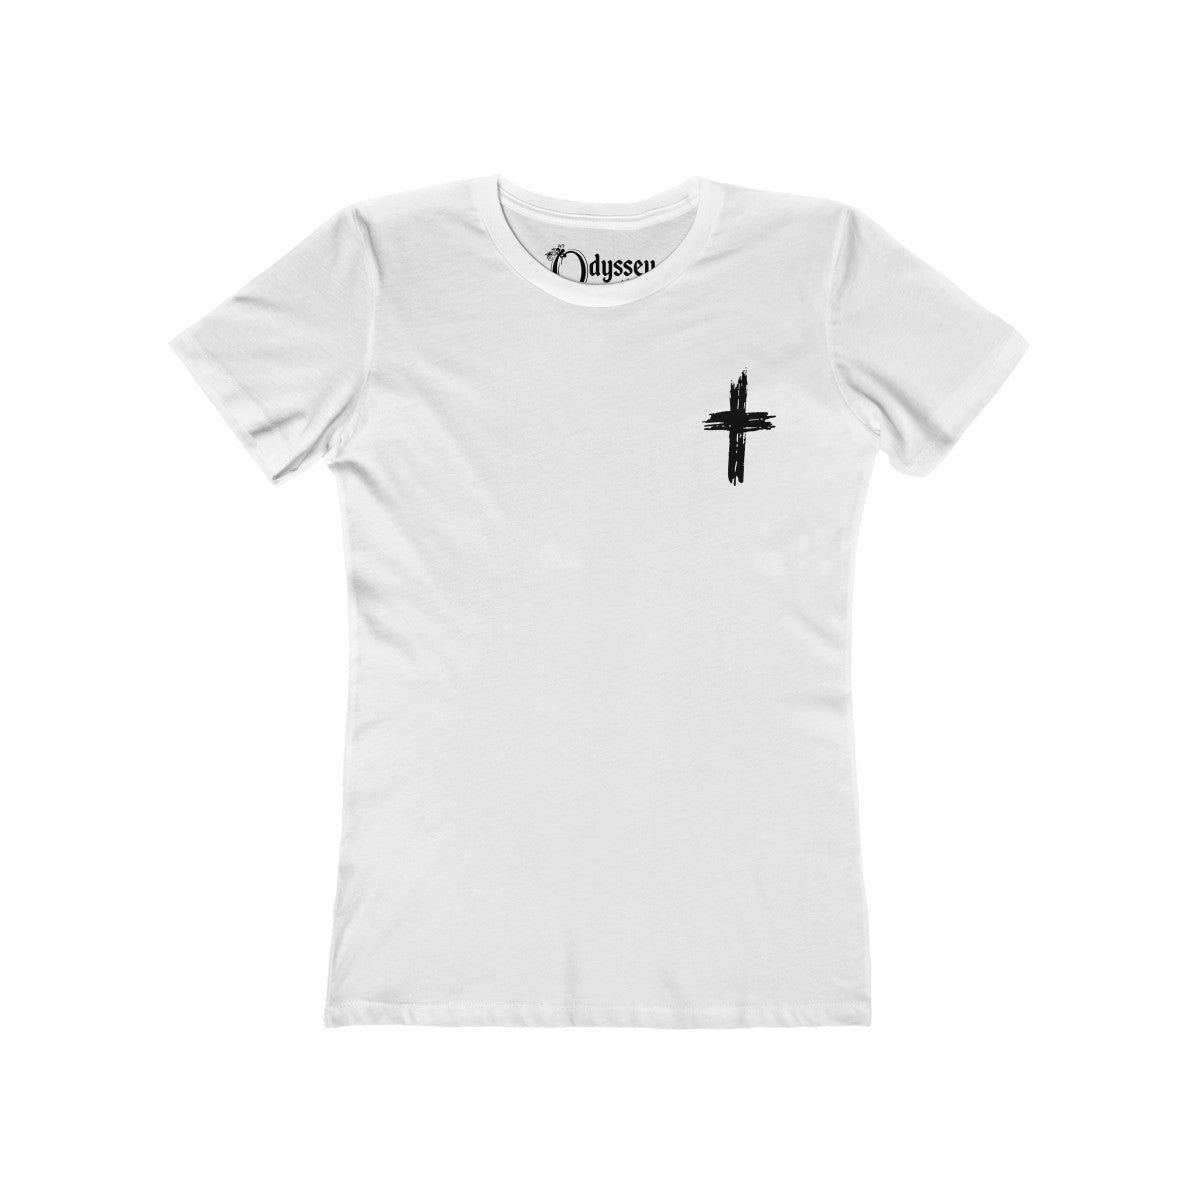 Odyssey Cross My Heart Women's Tee - Light